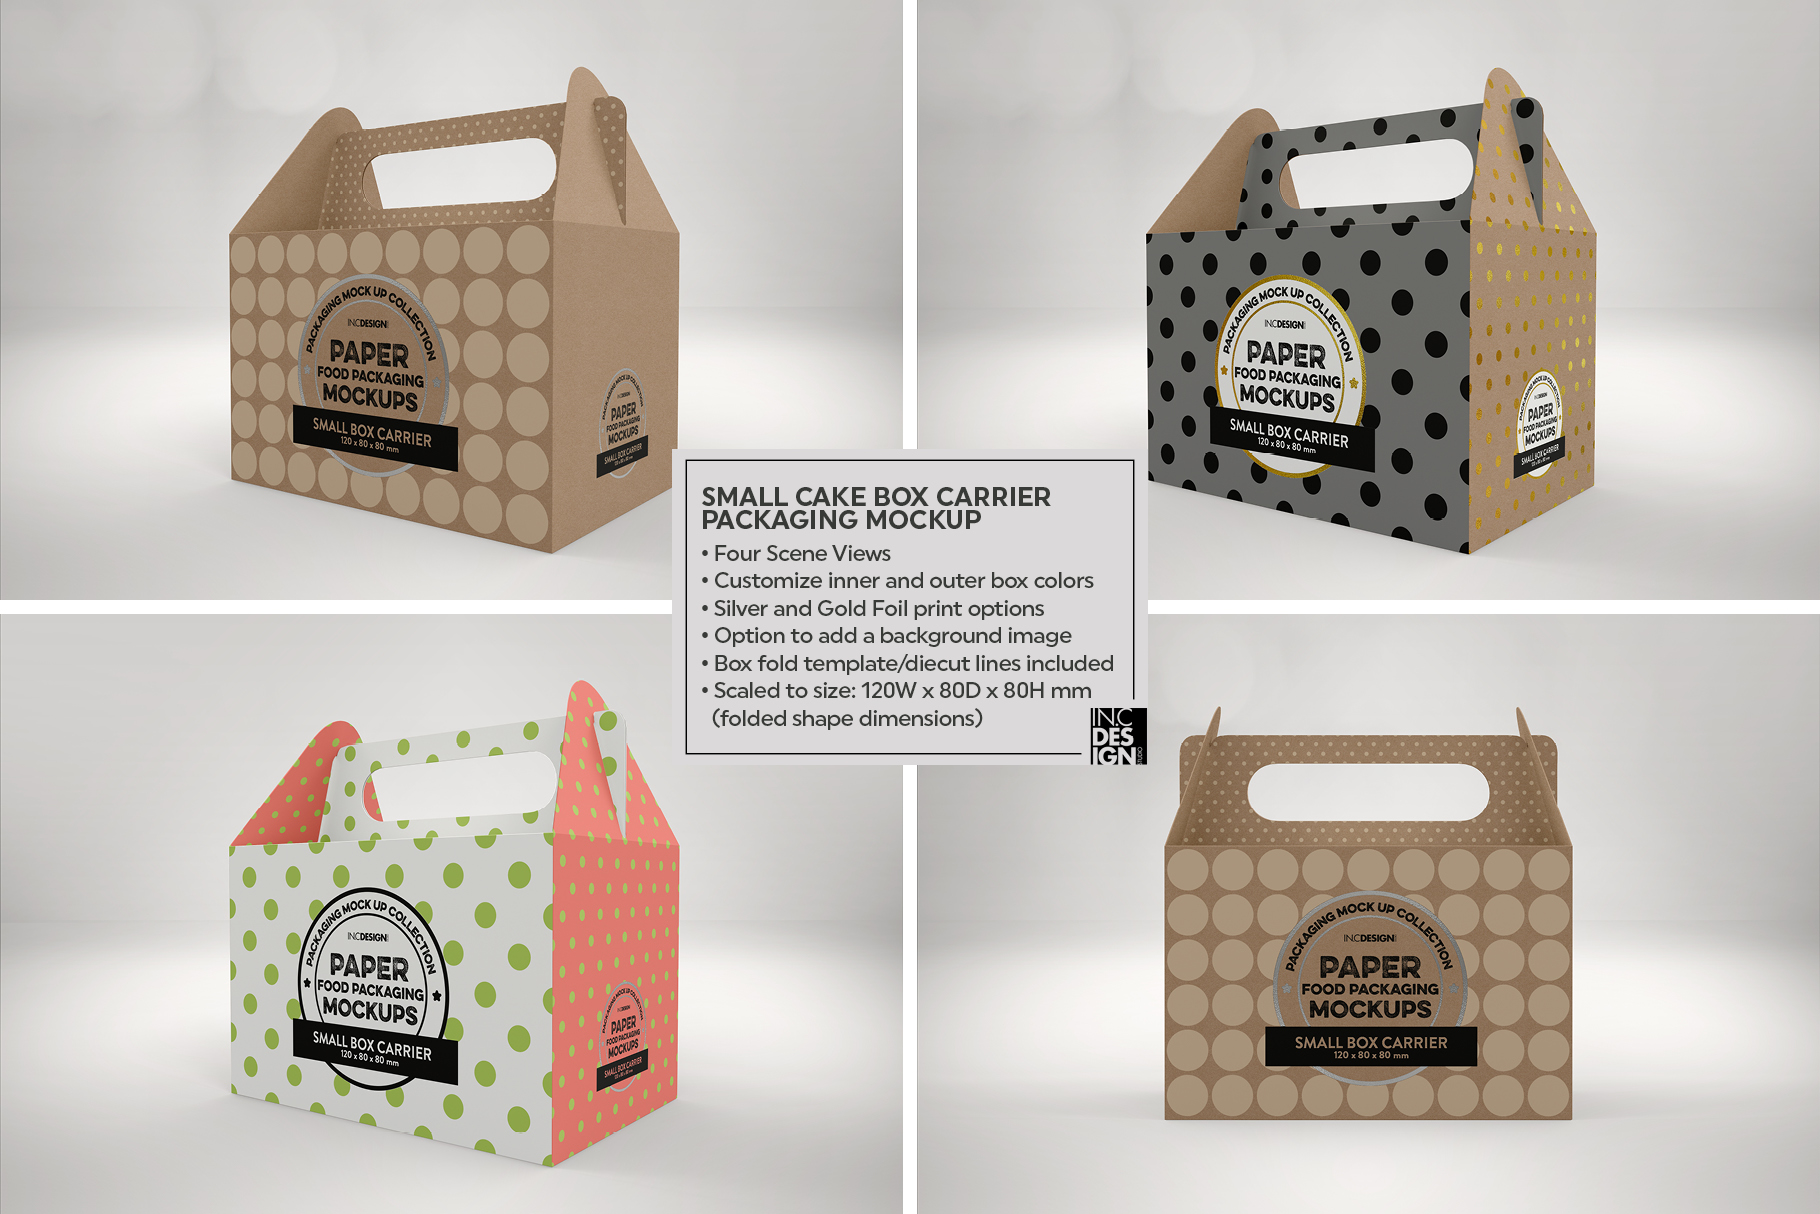 Small Cake Box Carrier Packaging Mockup example image 8